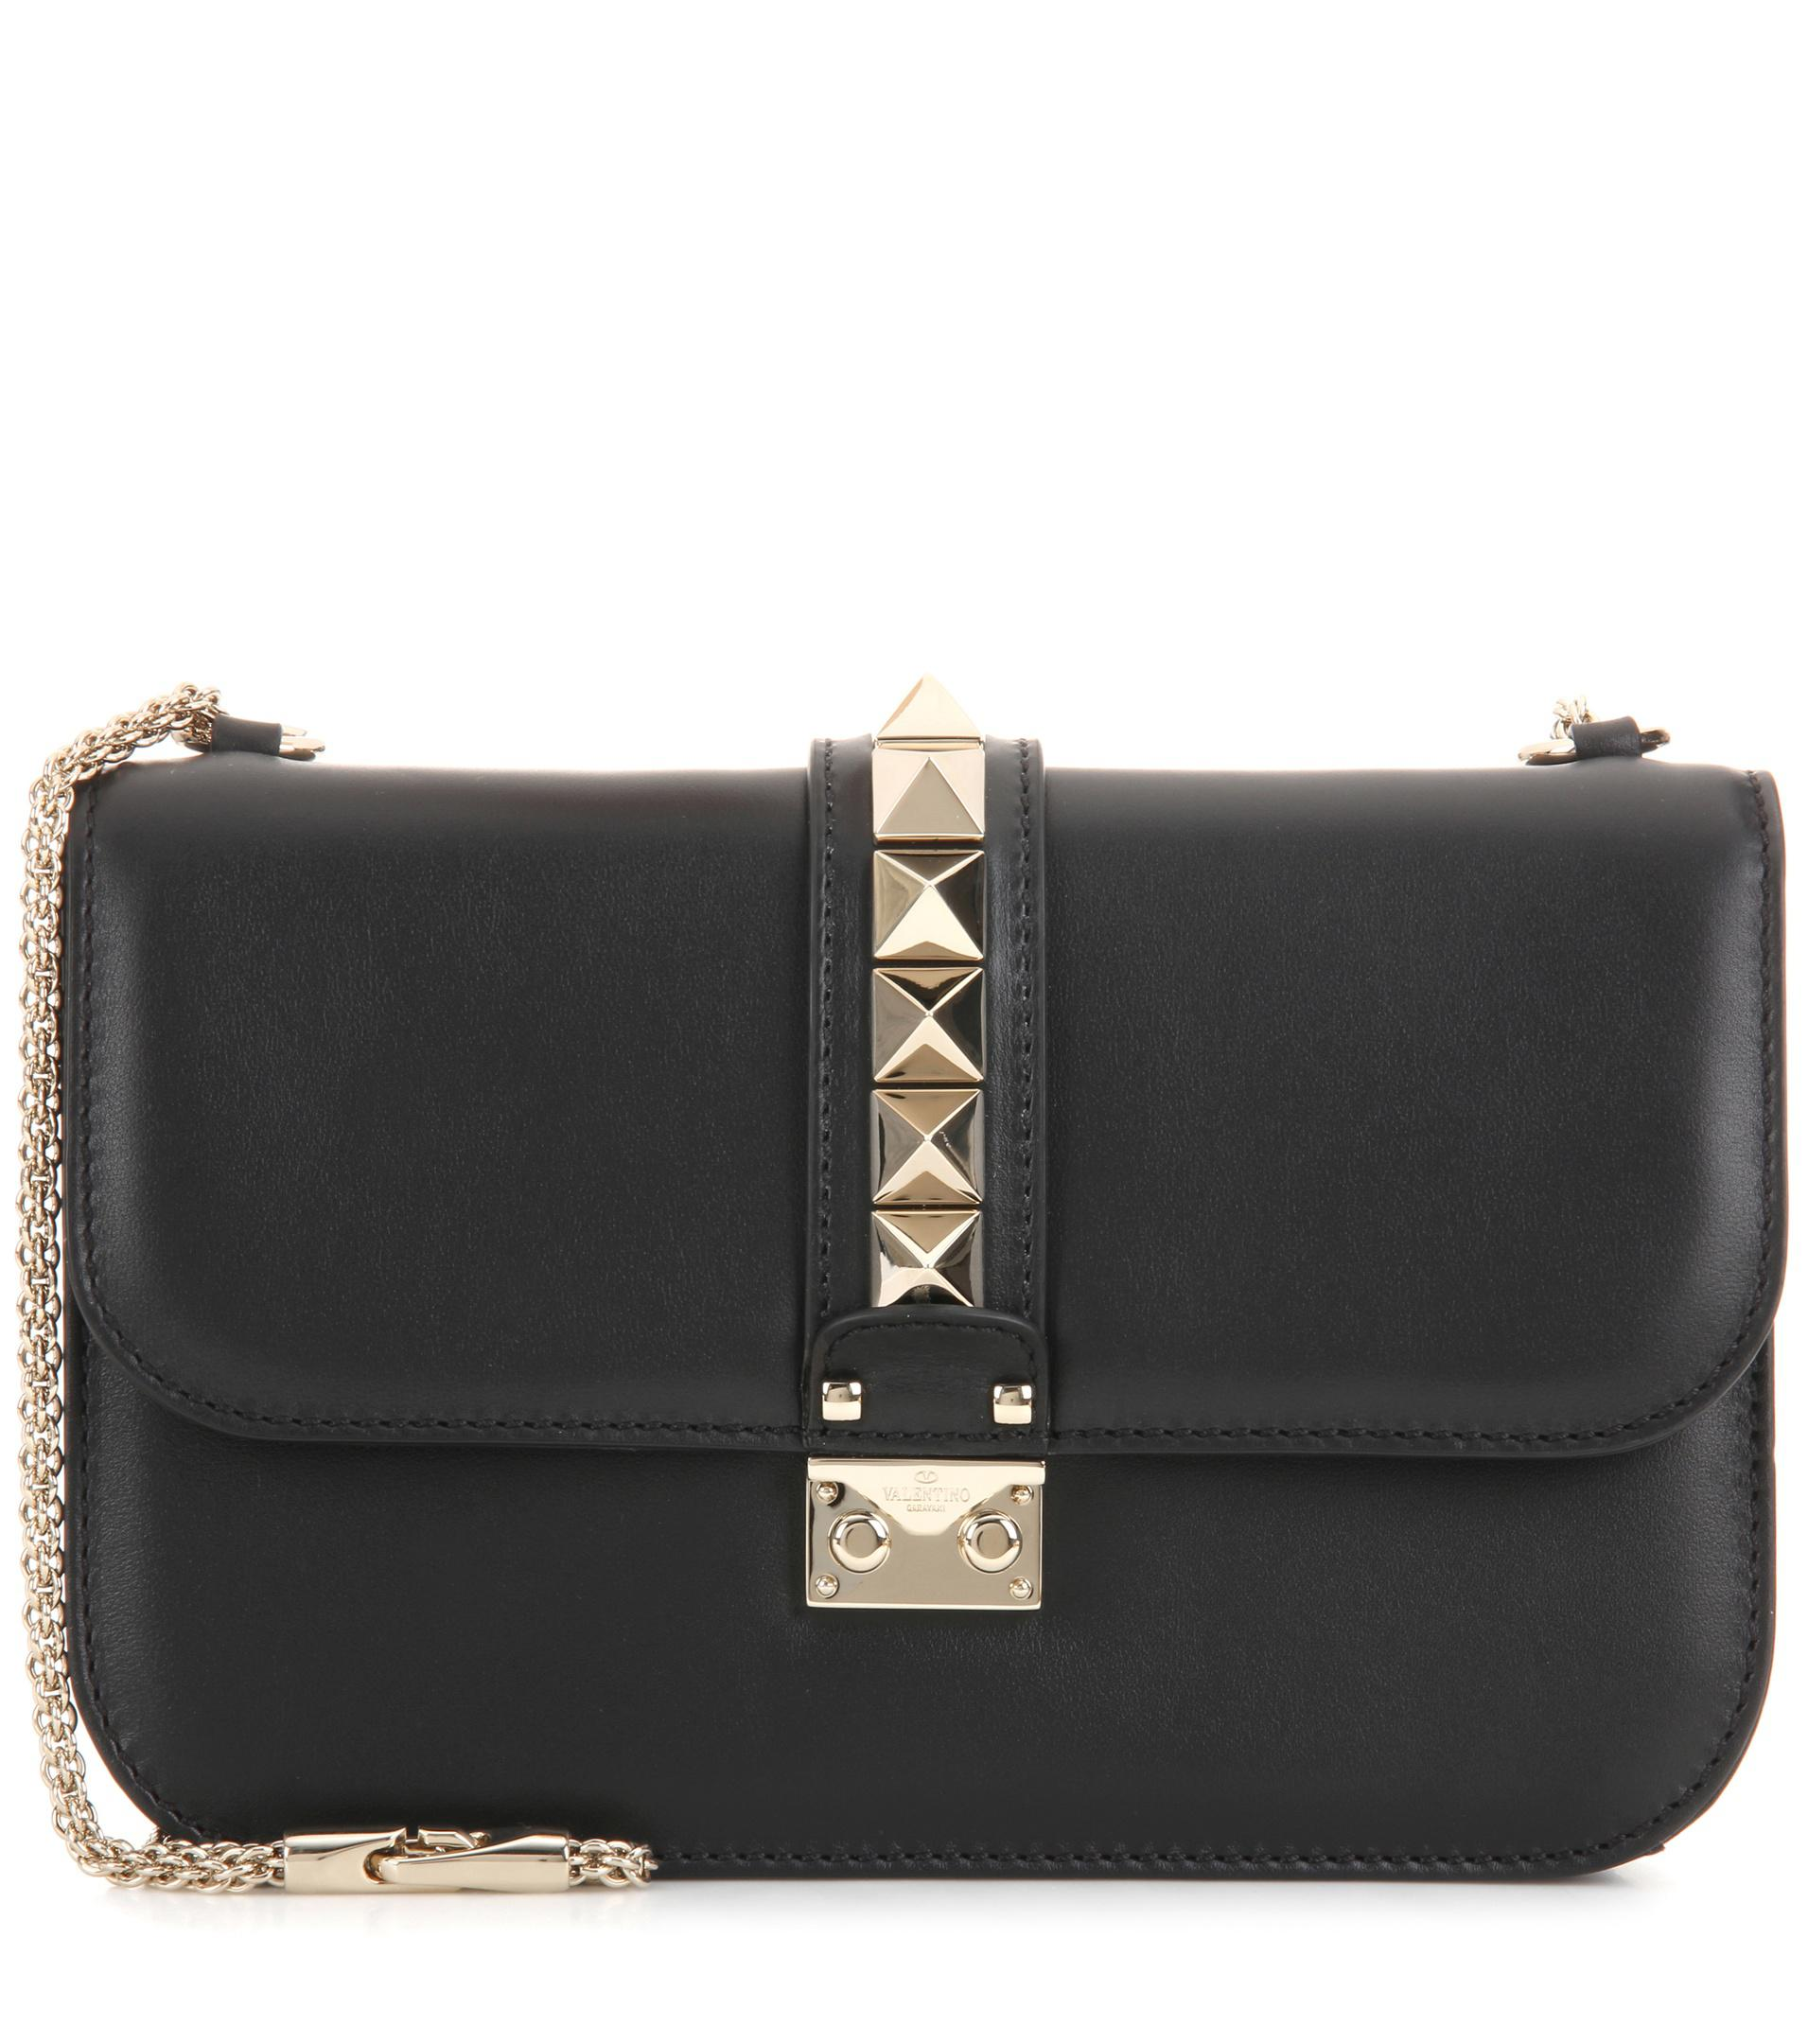 VIDA Leather Statement Clutch - CLUSTA LEATHER by VIDA WaN6MFeUJs